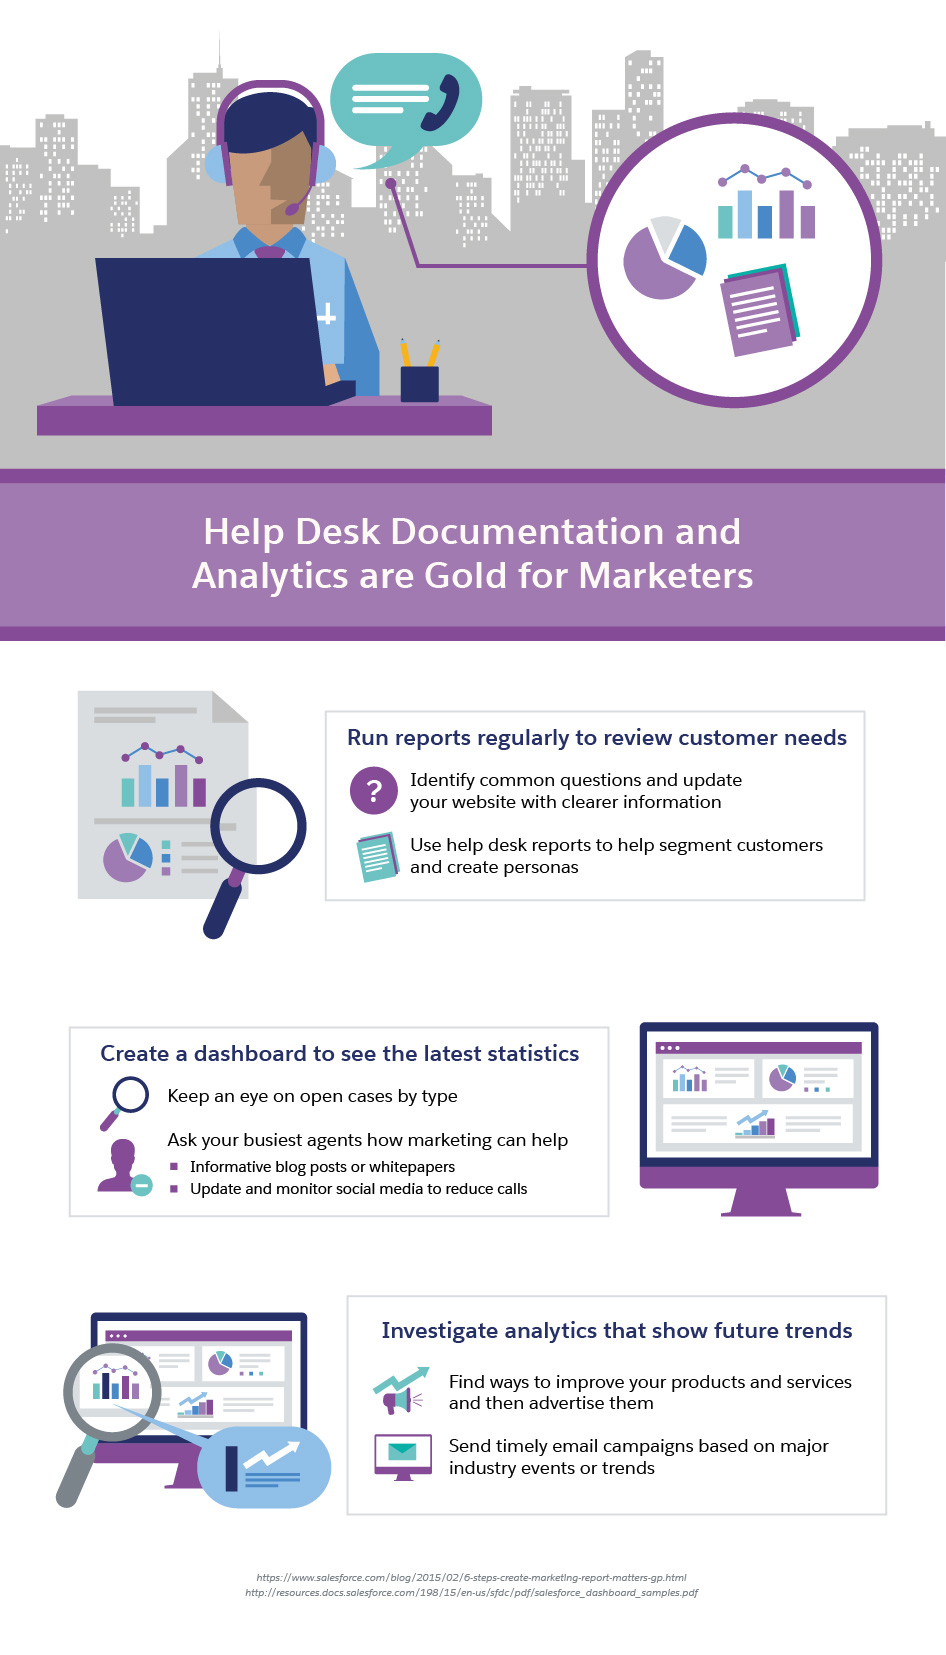 Hereu0027s How These Online Touchpoints Can Be Streamlined With Help Desk Best  Practices. Great Ideas